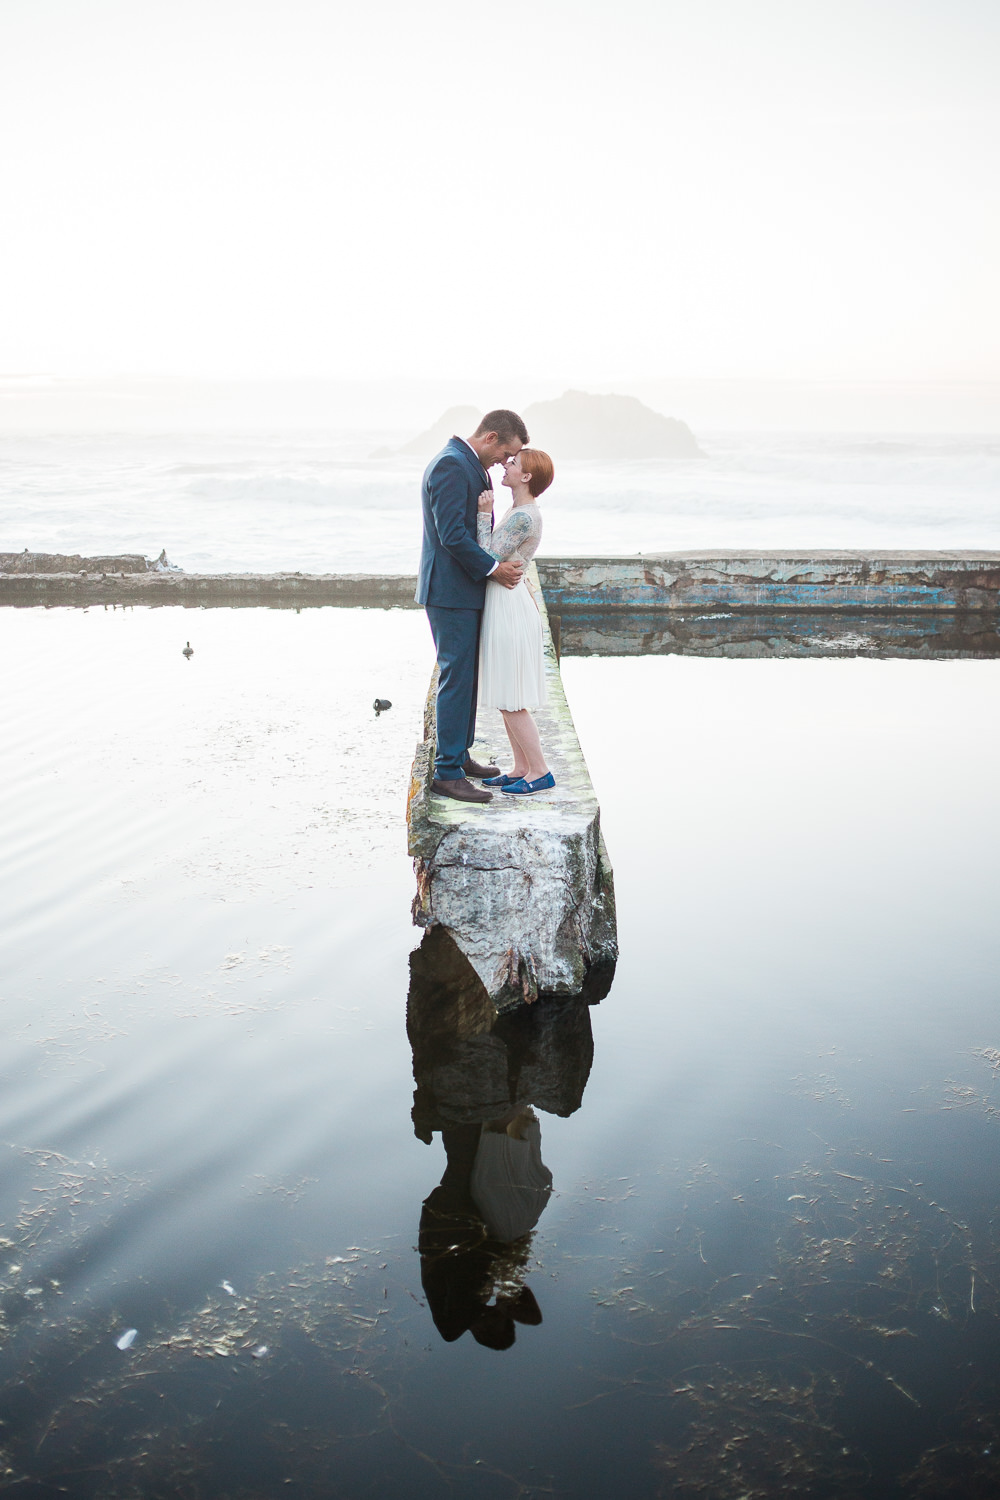 Beautiful Pacific Ocean reflection pool Sutro Baths wedding pictures Catherine Deane Waterfall Dress